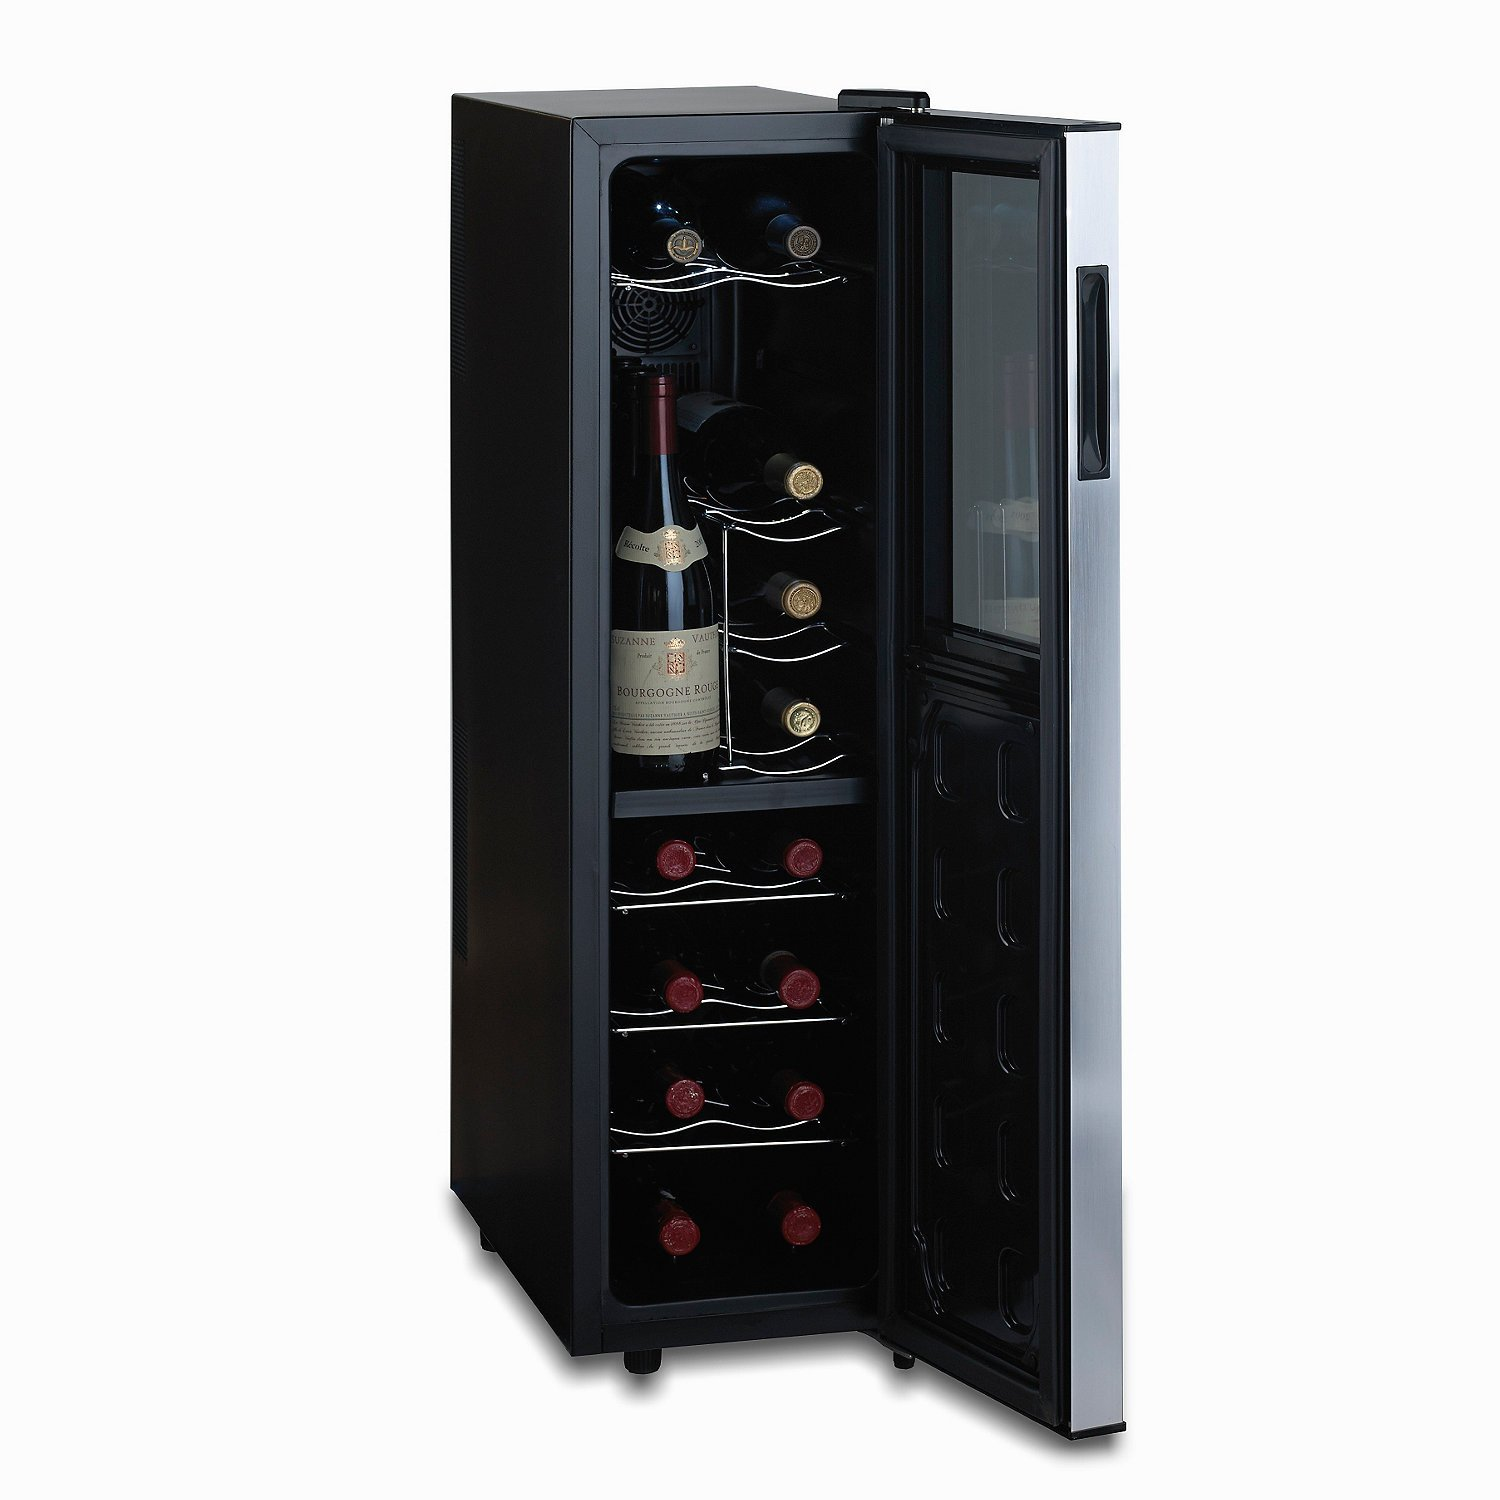 Wine Enthusiast Silent 18 Bottle Wine Refrigerator Review